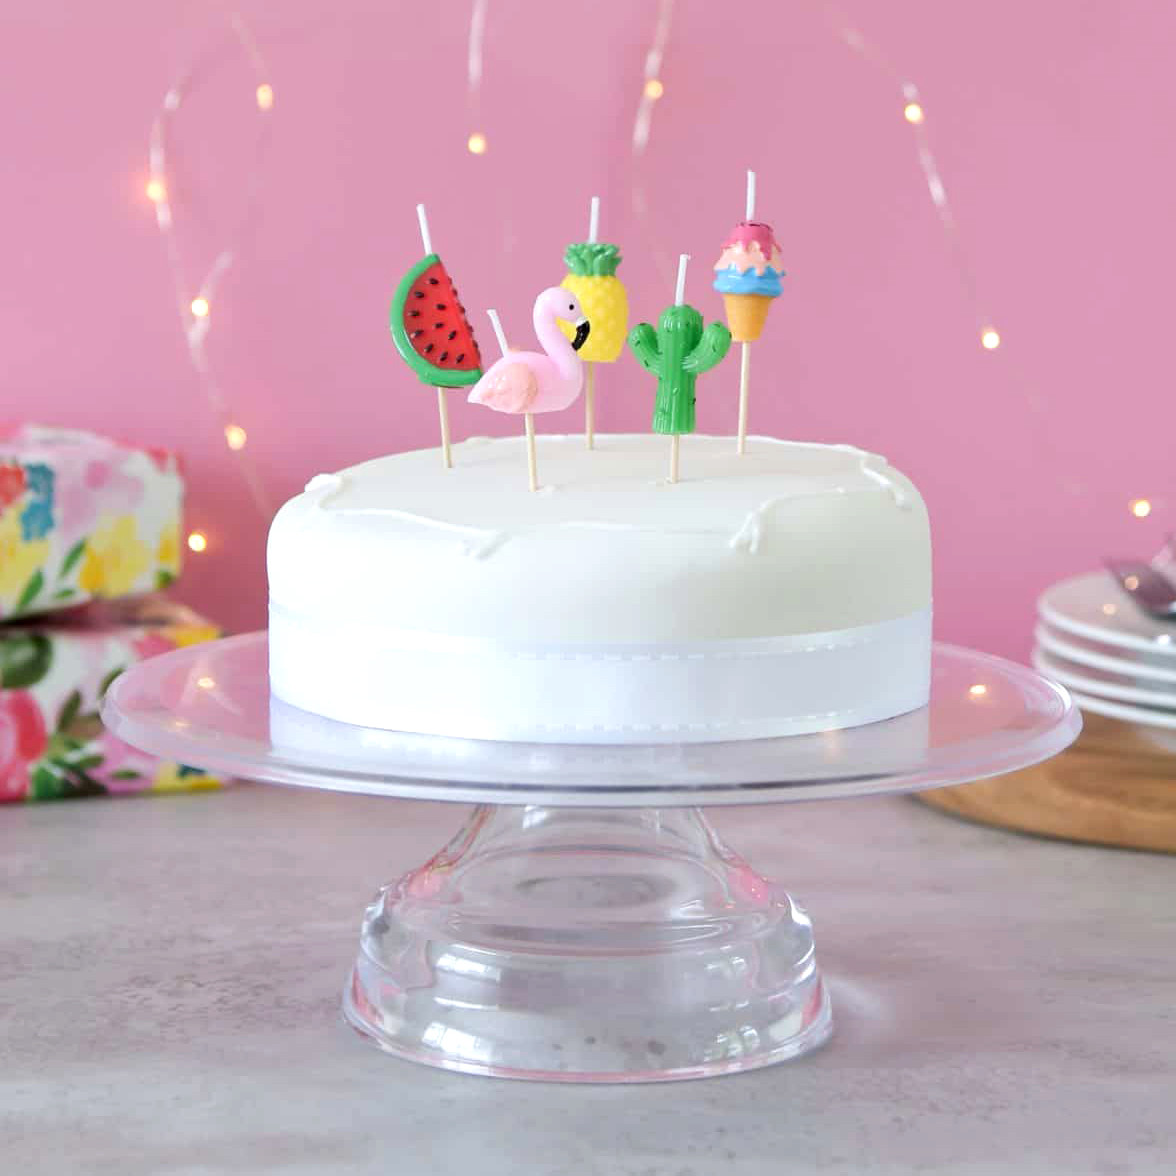 Tropical Themed Birthday Cake Candle For Summer Parties Hen Dos And Celebrations